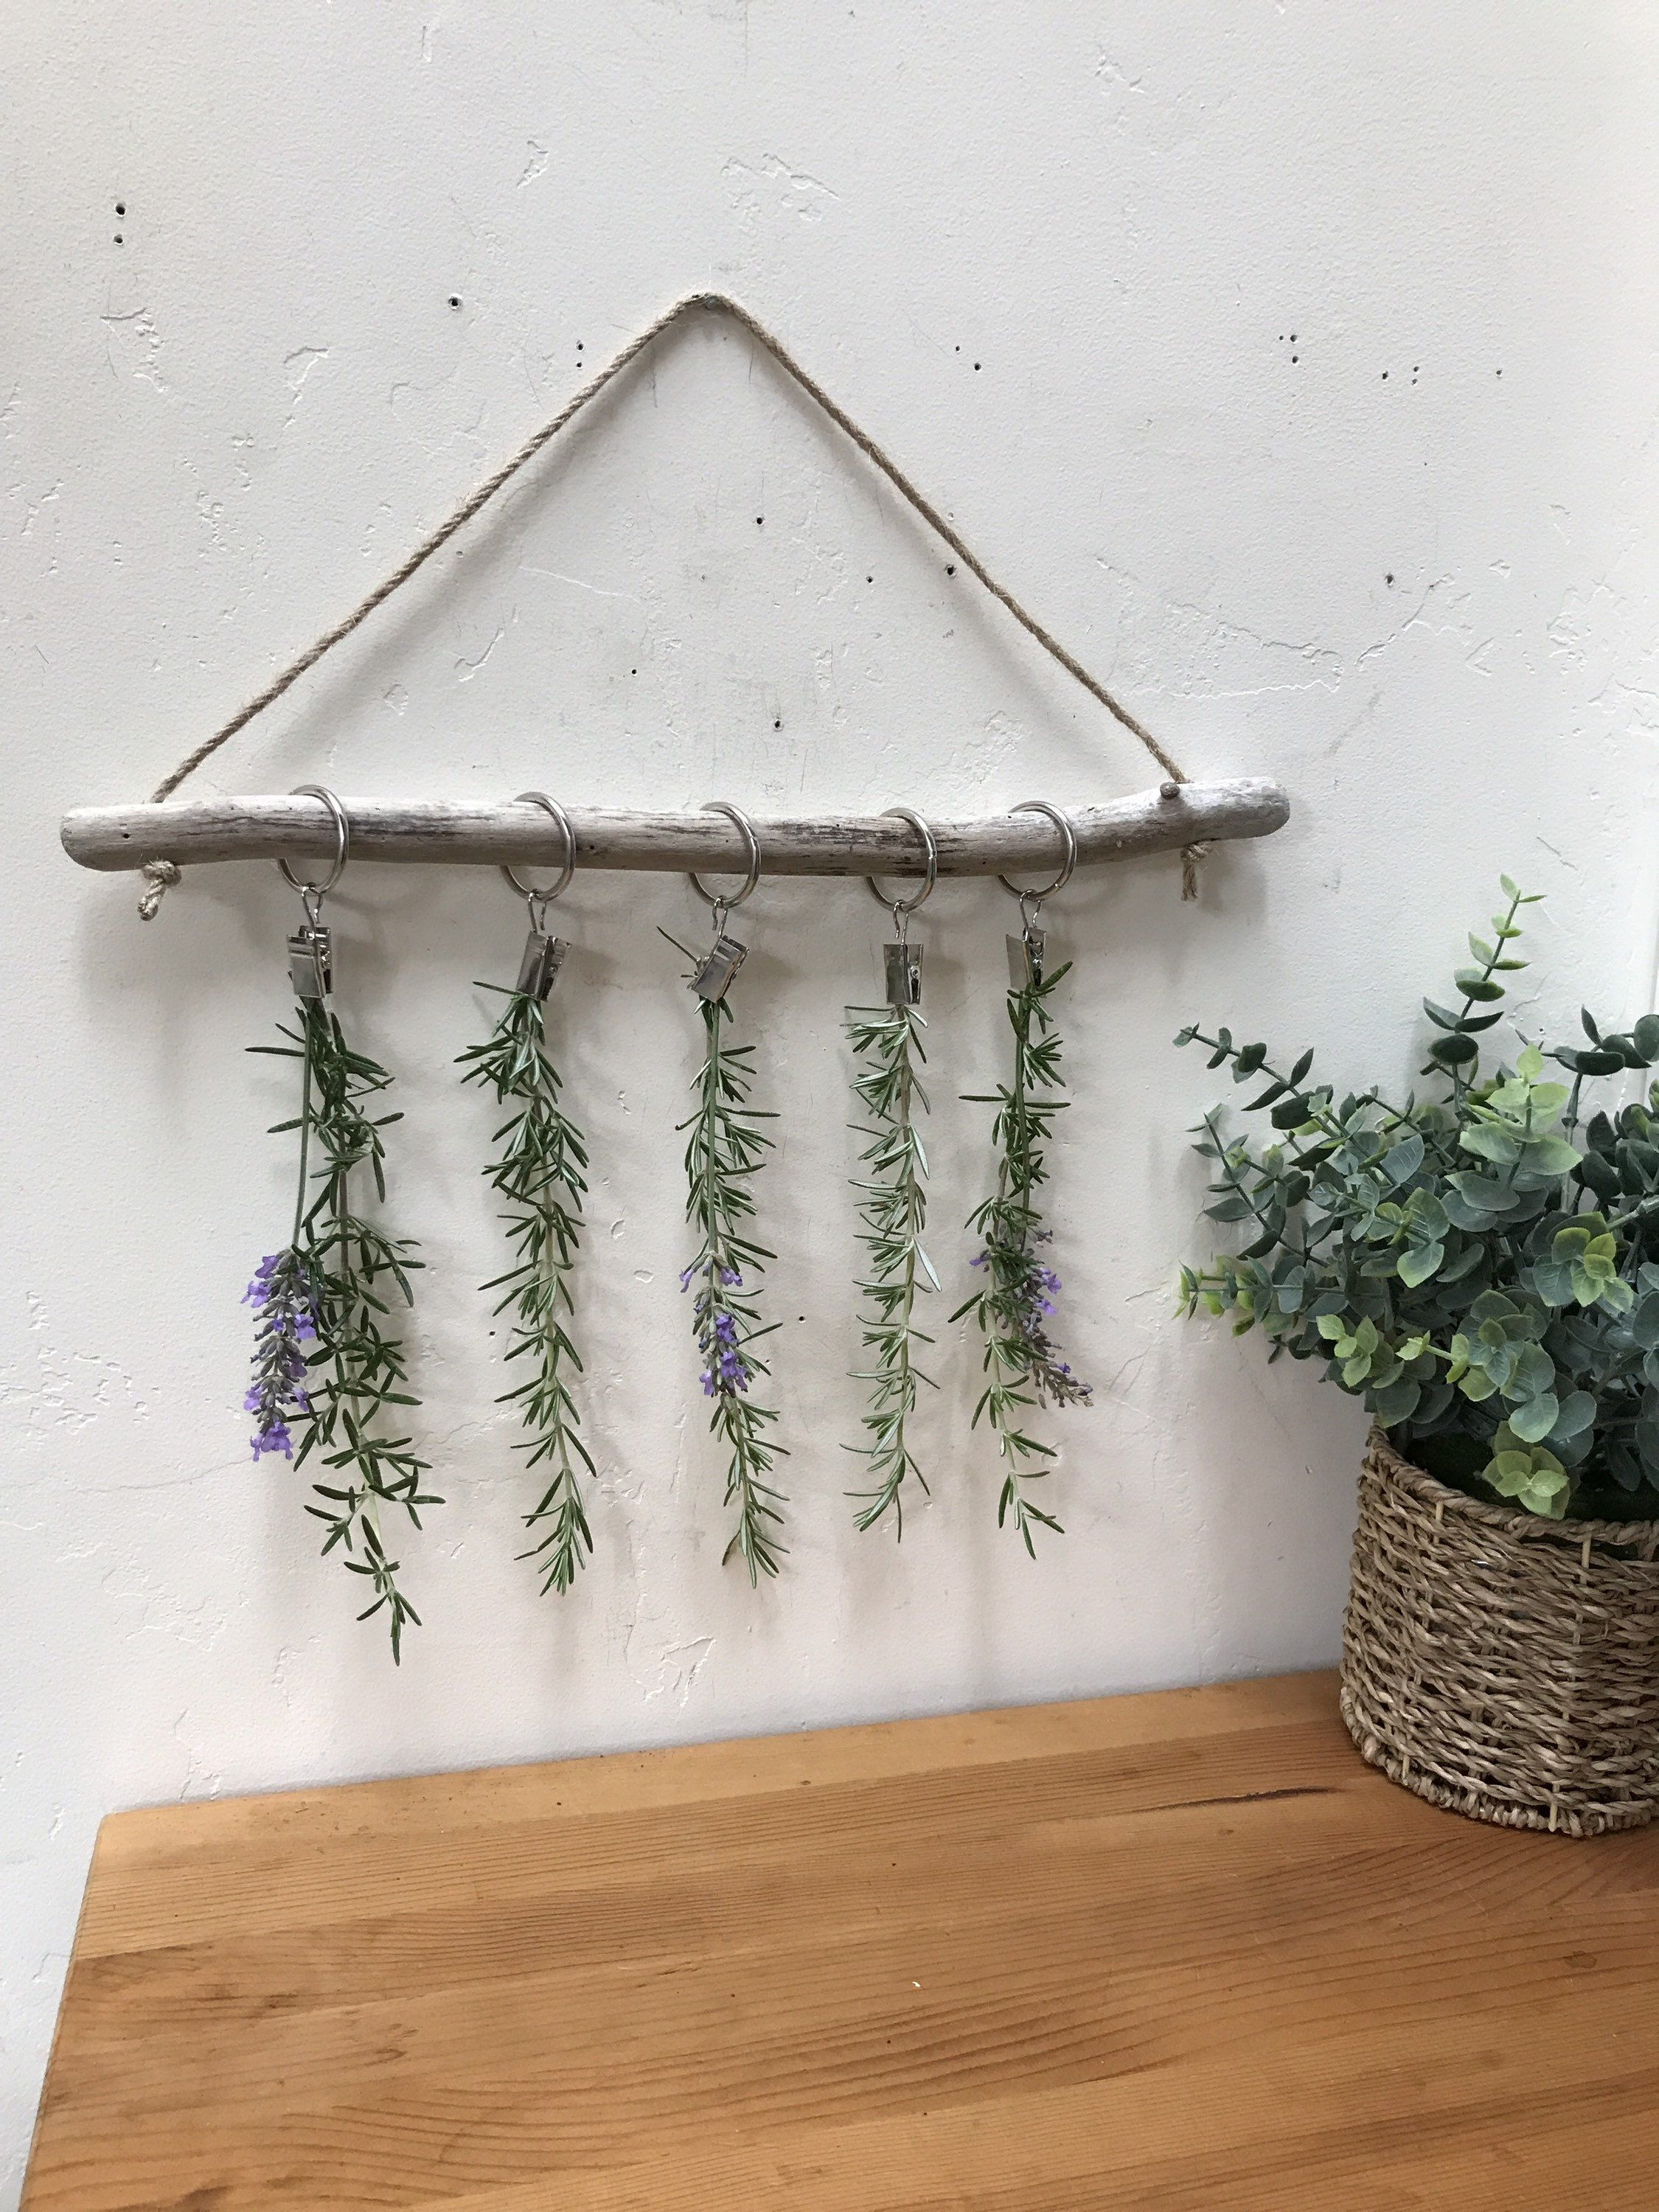 pin on driftwood dried flowers or herbs rack pinterest